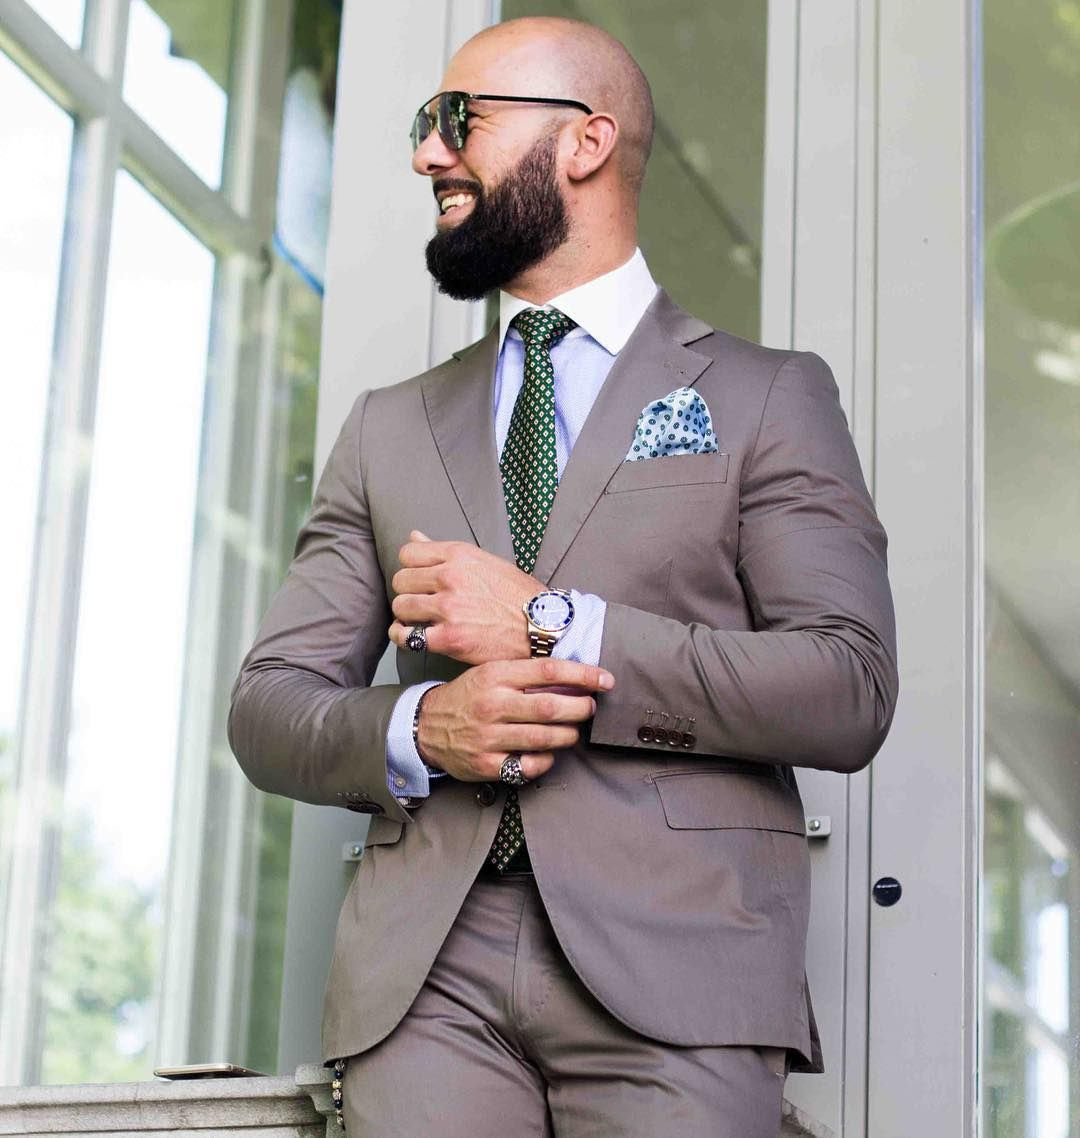 awesome 30 Spectacular Slim Fit Suits Styles - The Fabulous Gem of Men's Fashion Check more at http://stylemann.com/best-slim-fit-suits-styles/